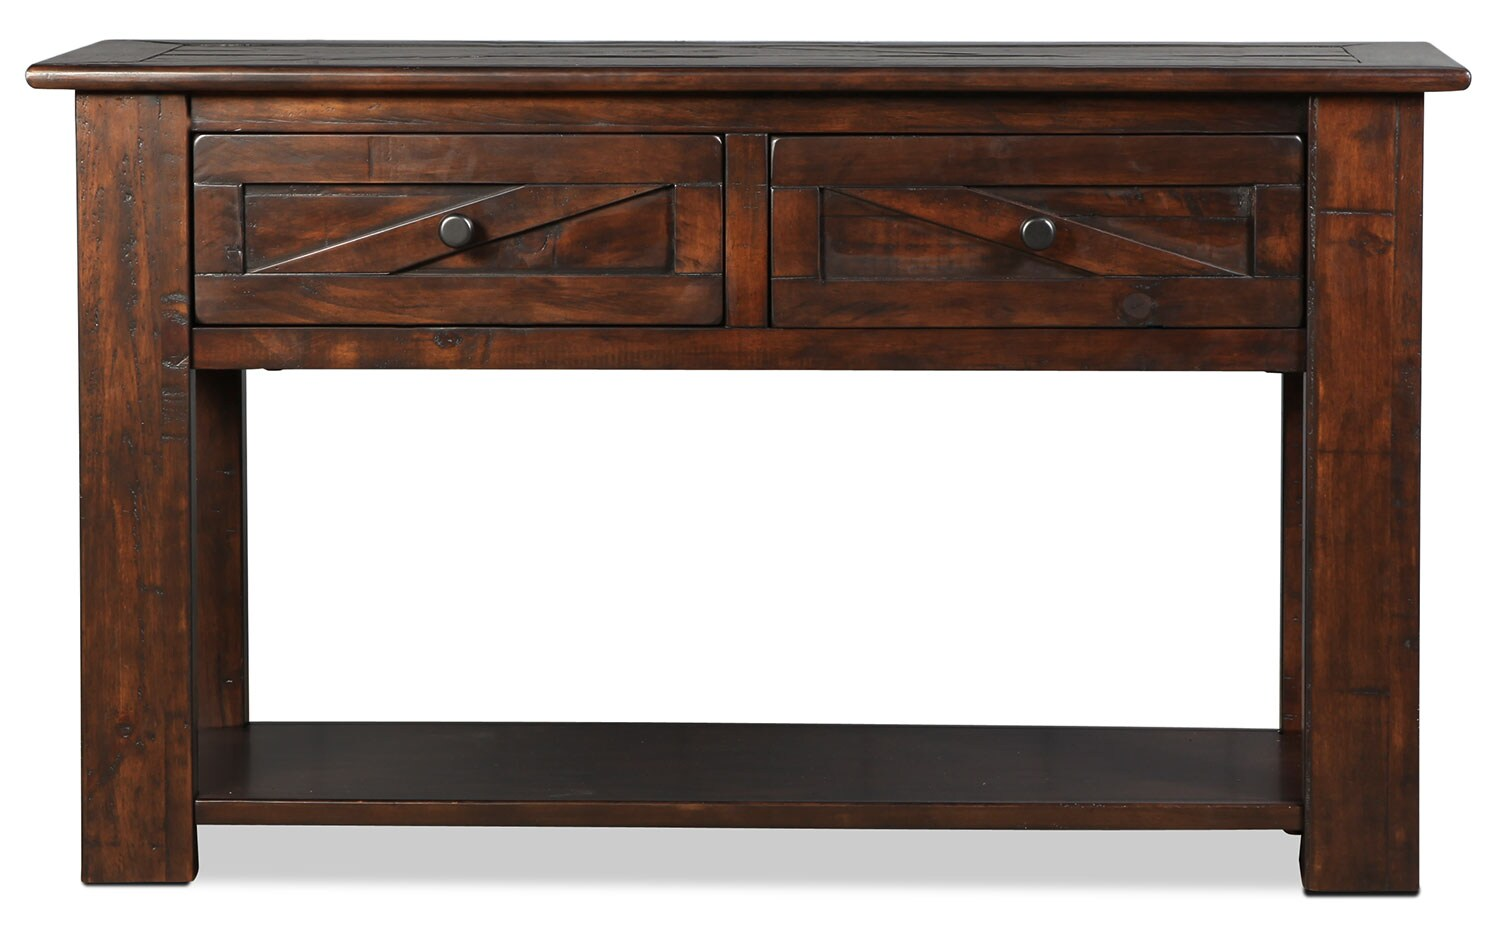 Fraser Sofa Table - Rustic Pine